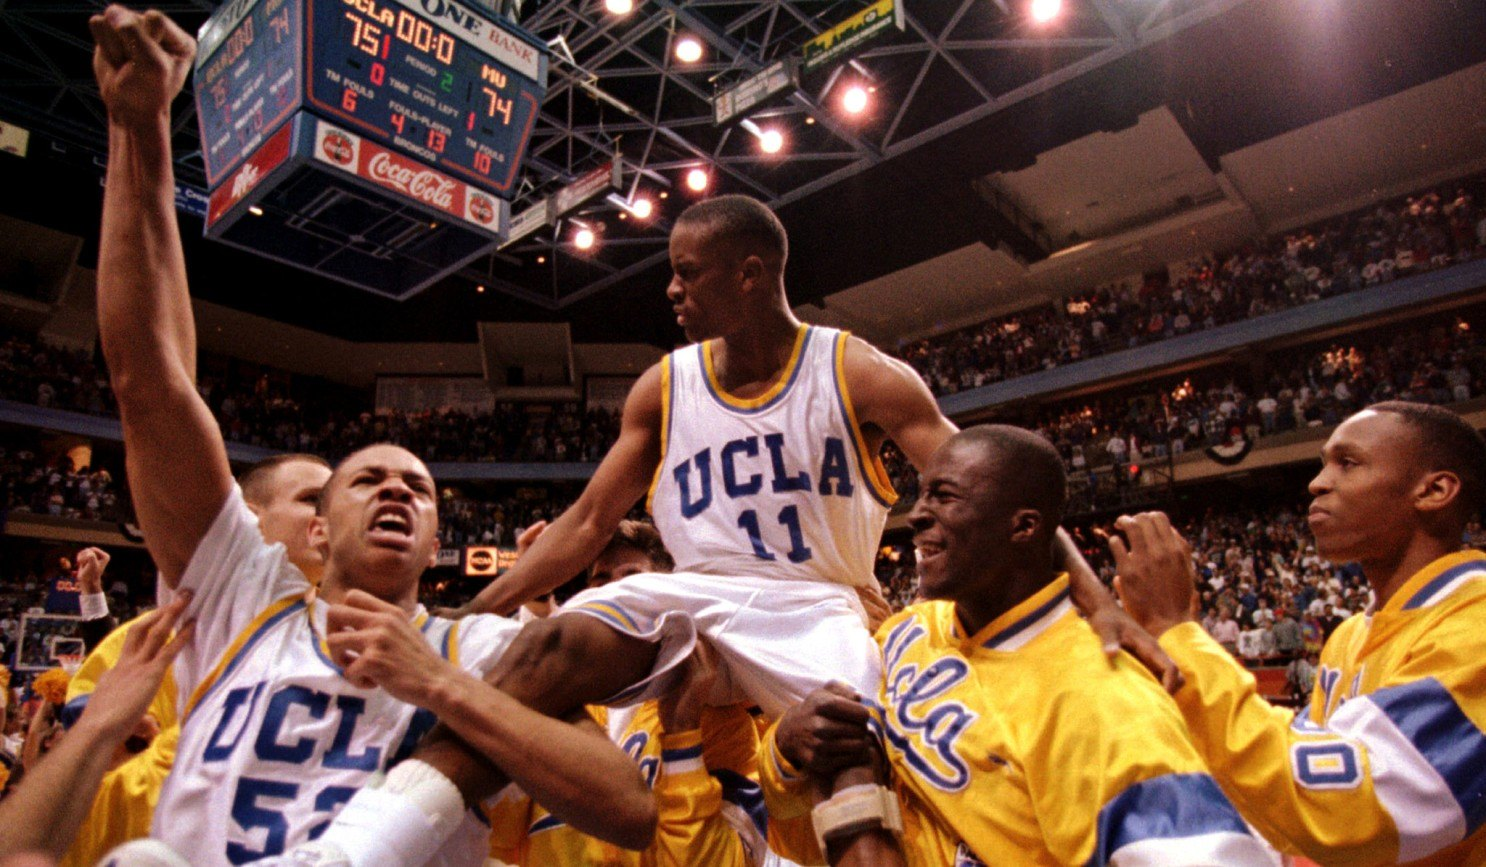 UCLA Tyus Edney 1995 March Madness Bruins Shot